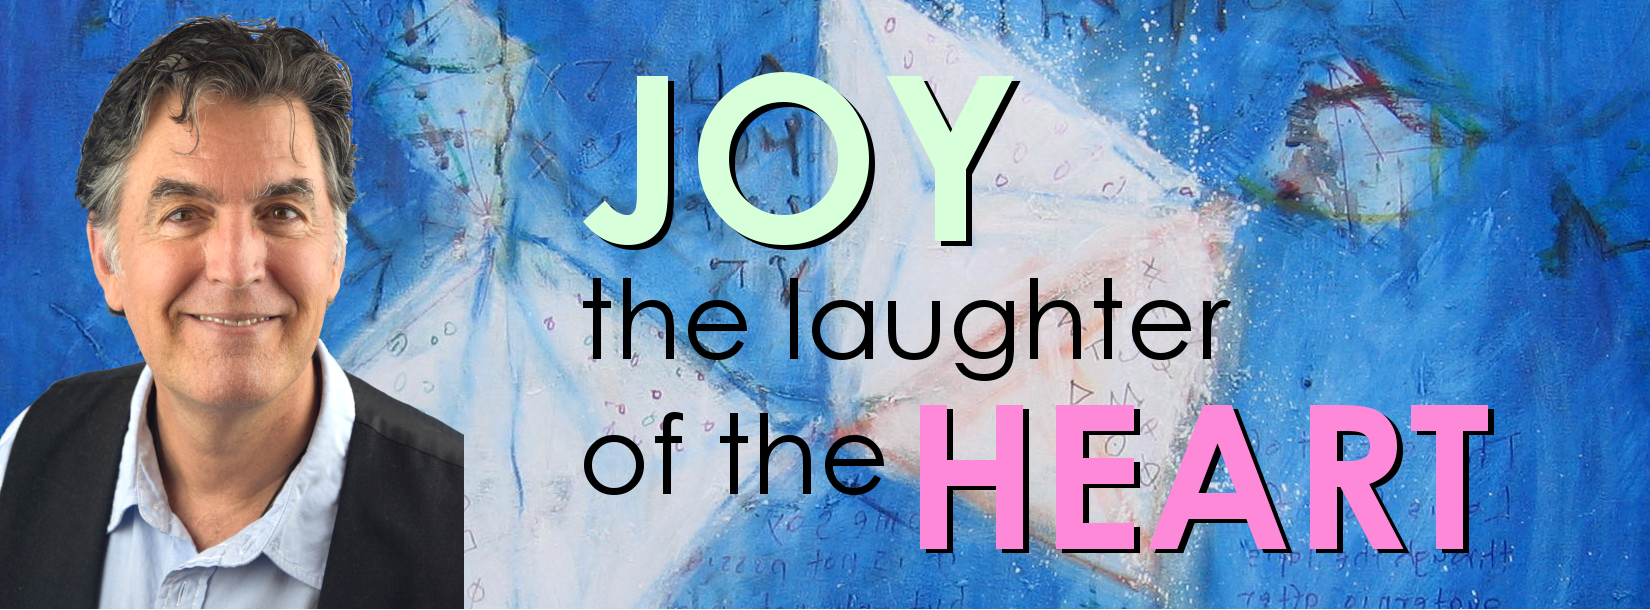 Joy, the laughter of the Heart